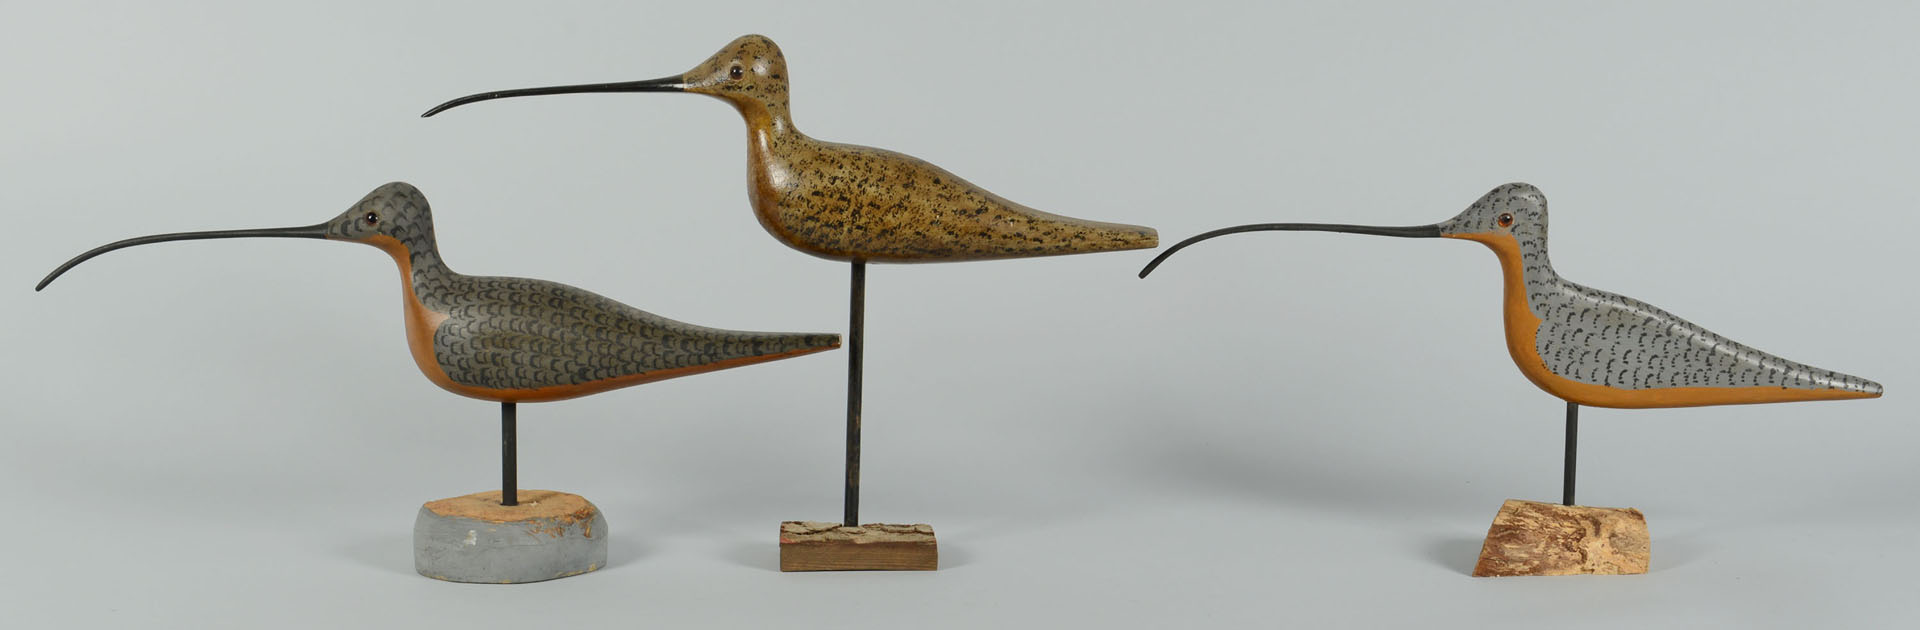 Lot 550: 8 Shorebirds by Percy Perkins, N.H.